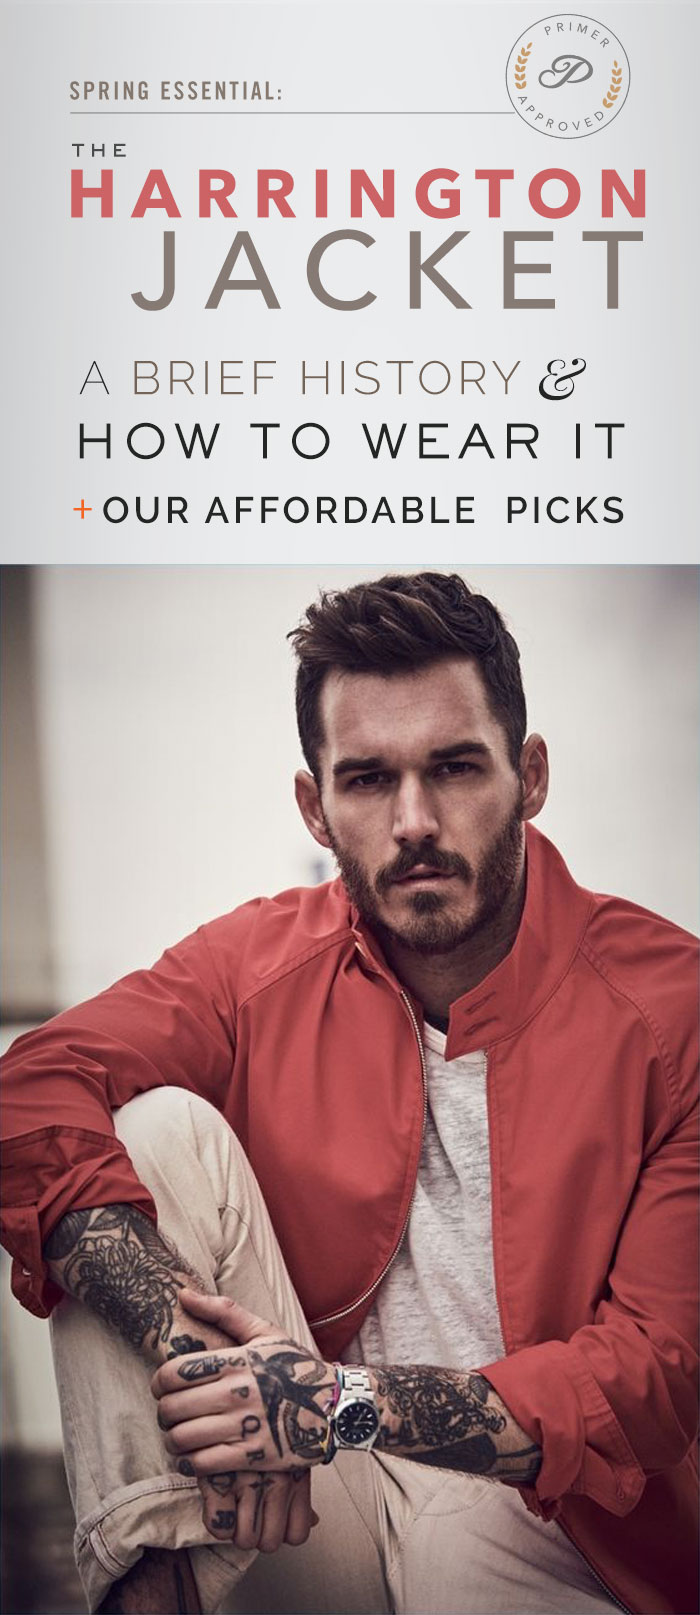 The Harrington Jacket - How to Wear It, History, & Affordable Picks